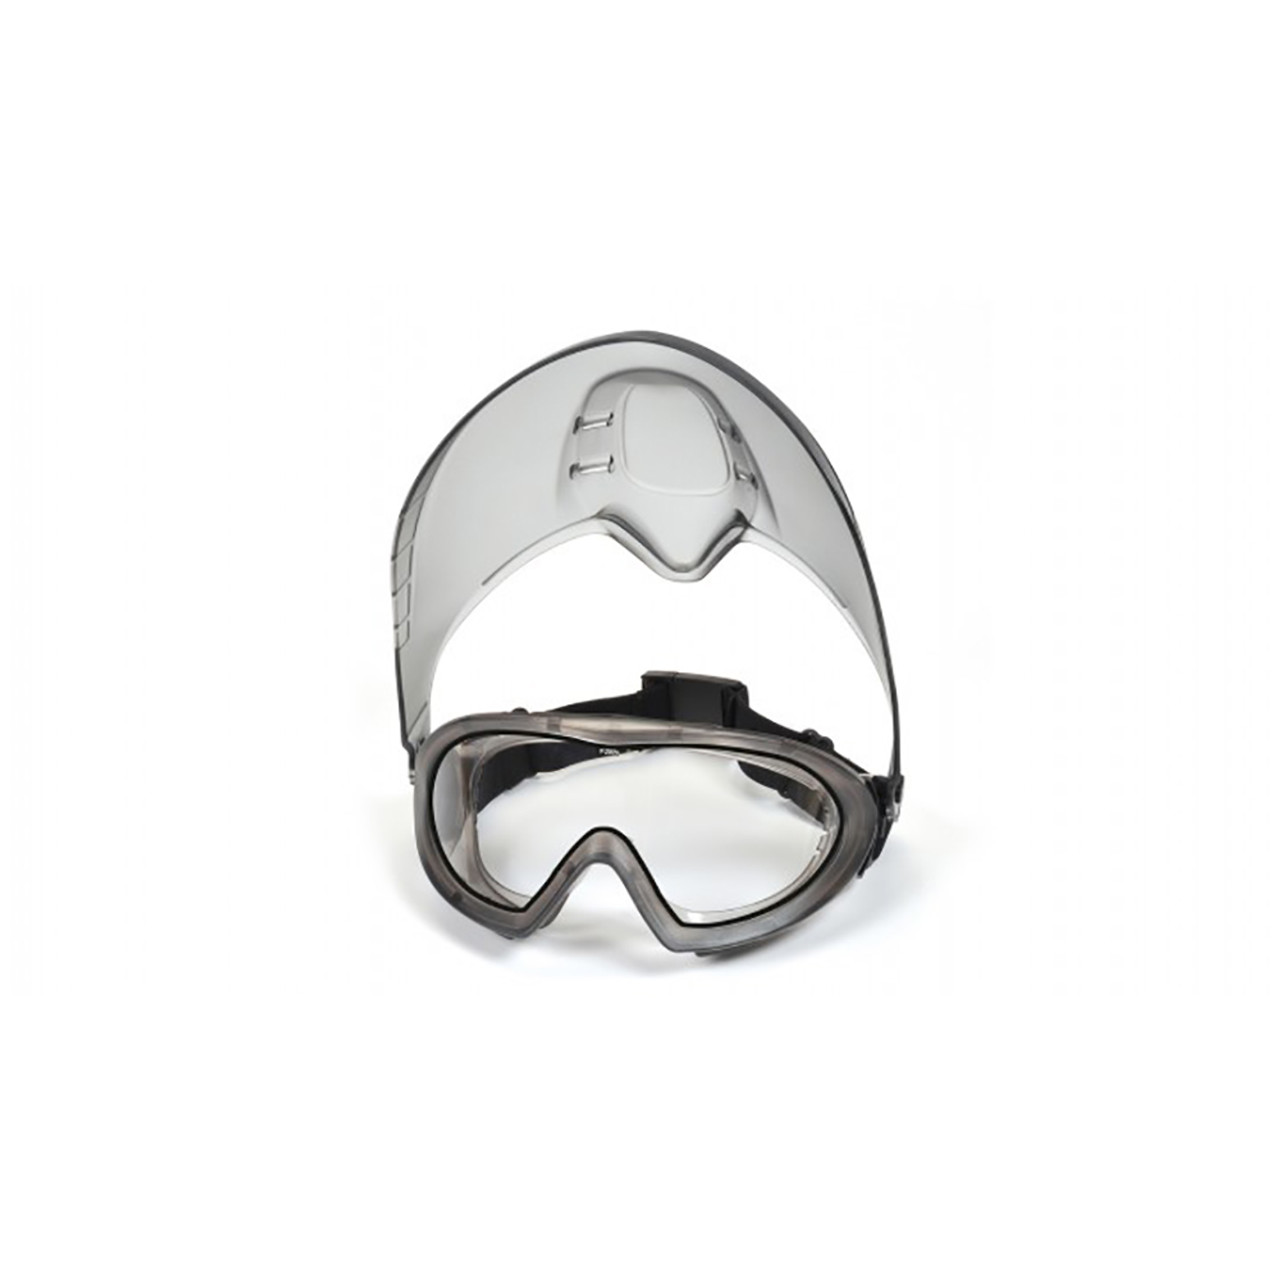 Pyramex Capstone Series - Direct/Indirect Goggle with Clear Anti-Fog Lens and Faceshield Attachment